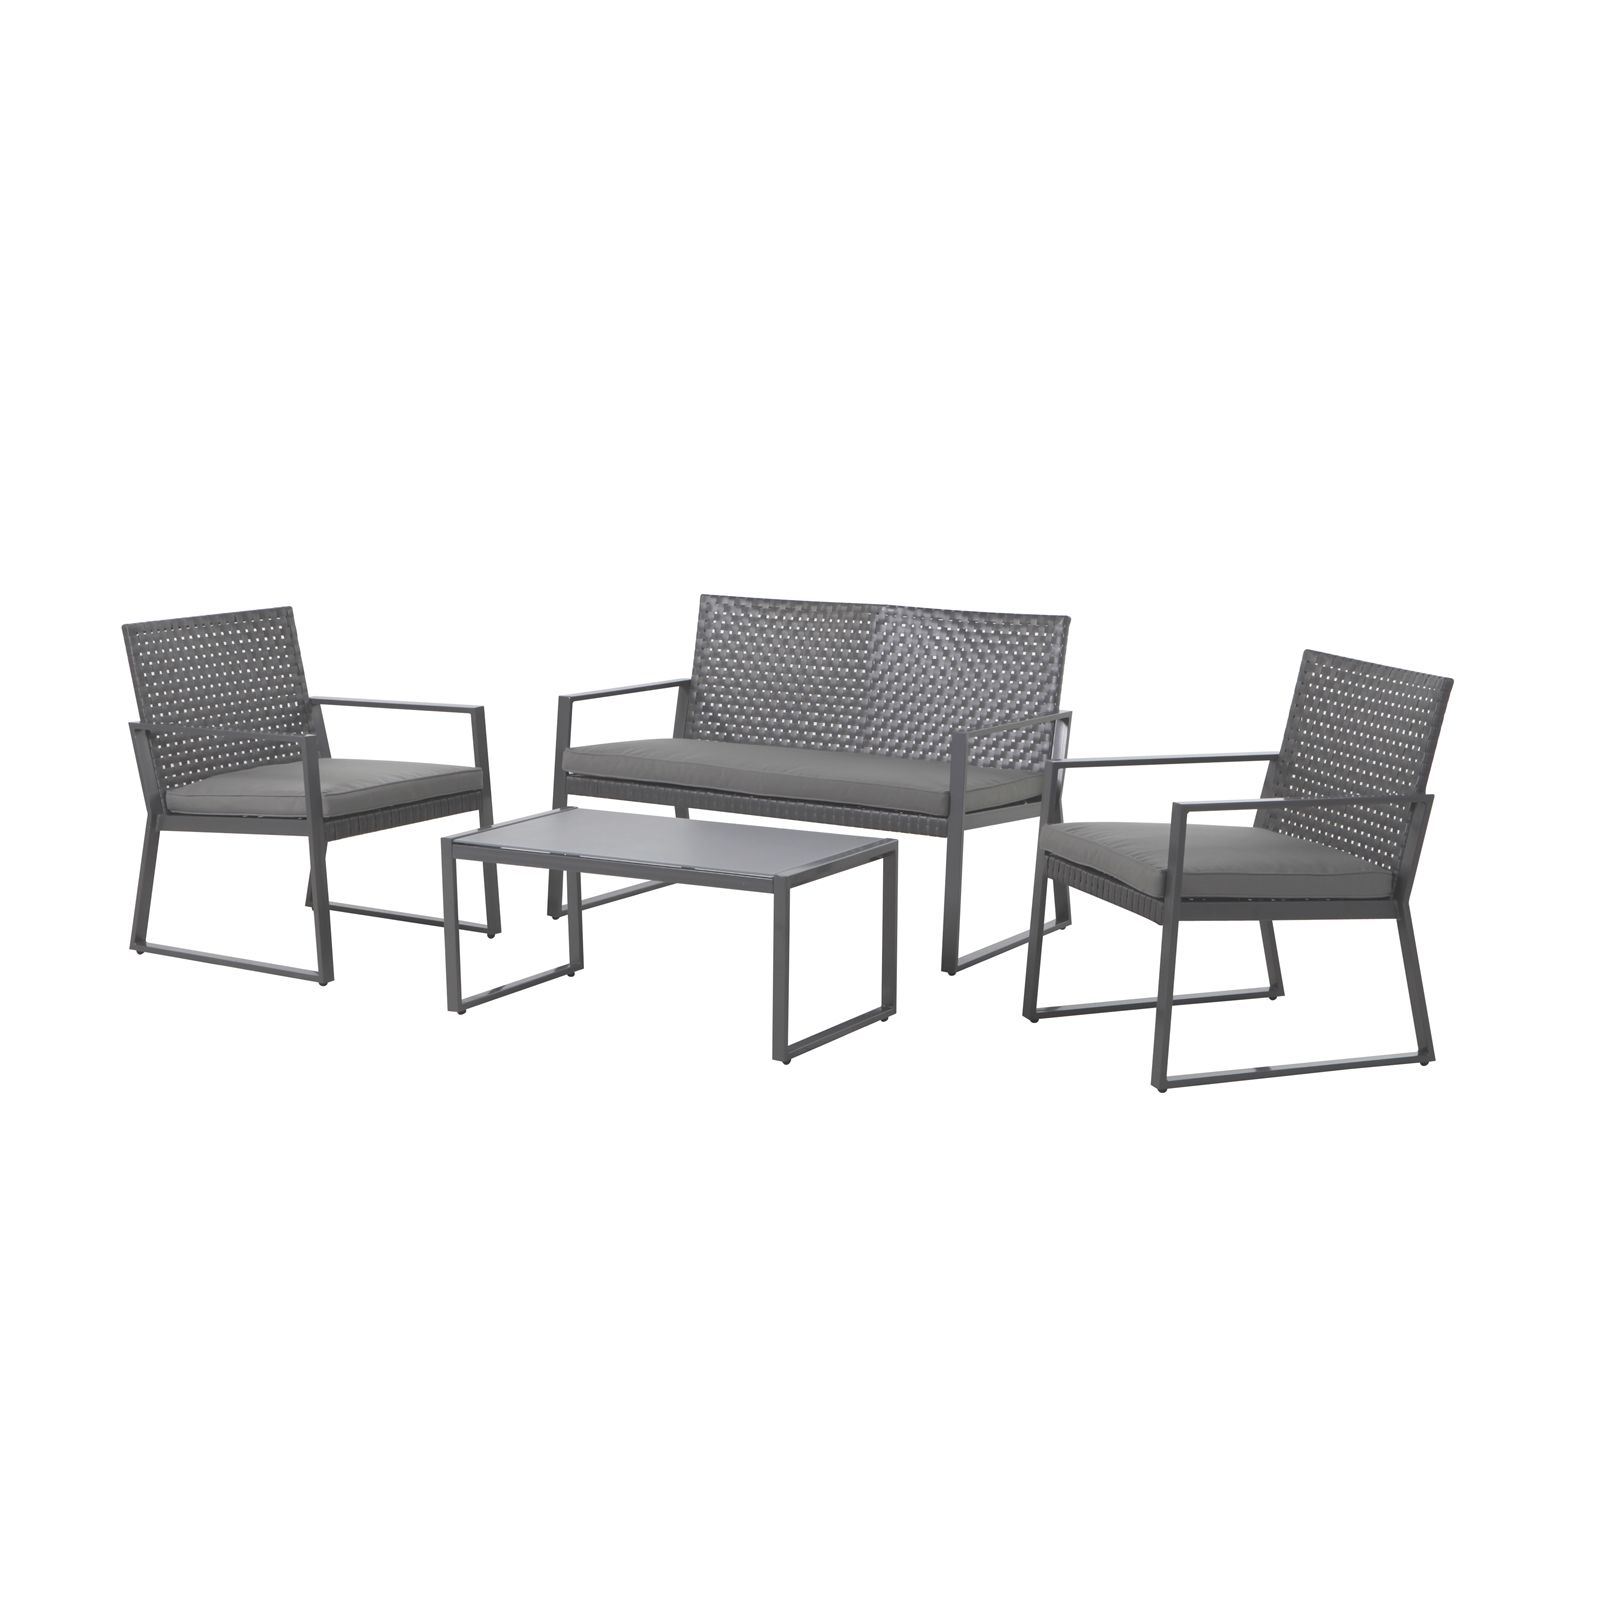 Admirable Find Marquee 4 Piece Silverleaves Lounge Setting At Bunnings Machost Co Dining Chair Design Ideas Machostcouk